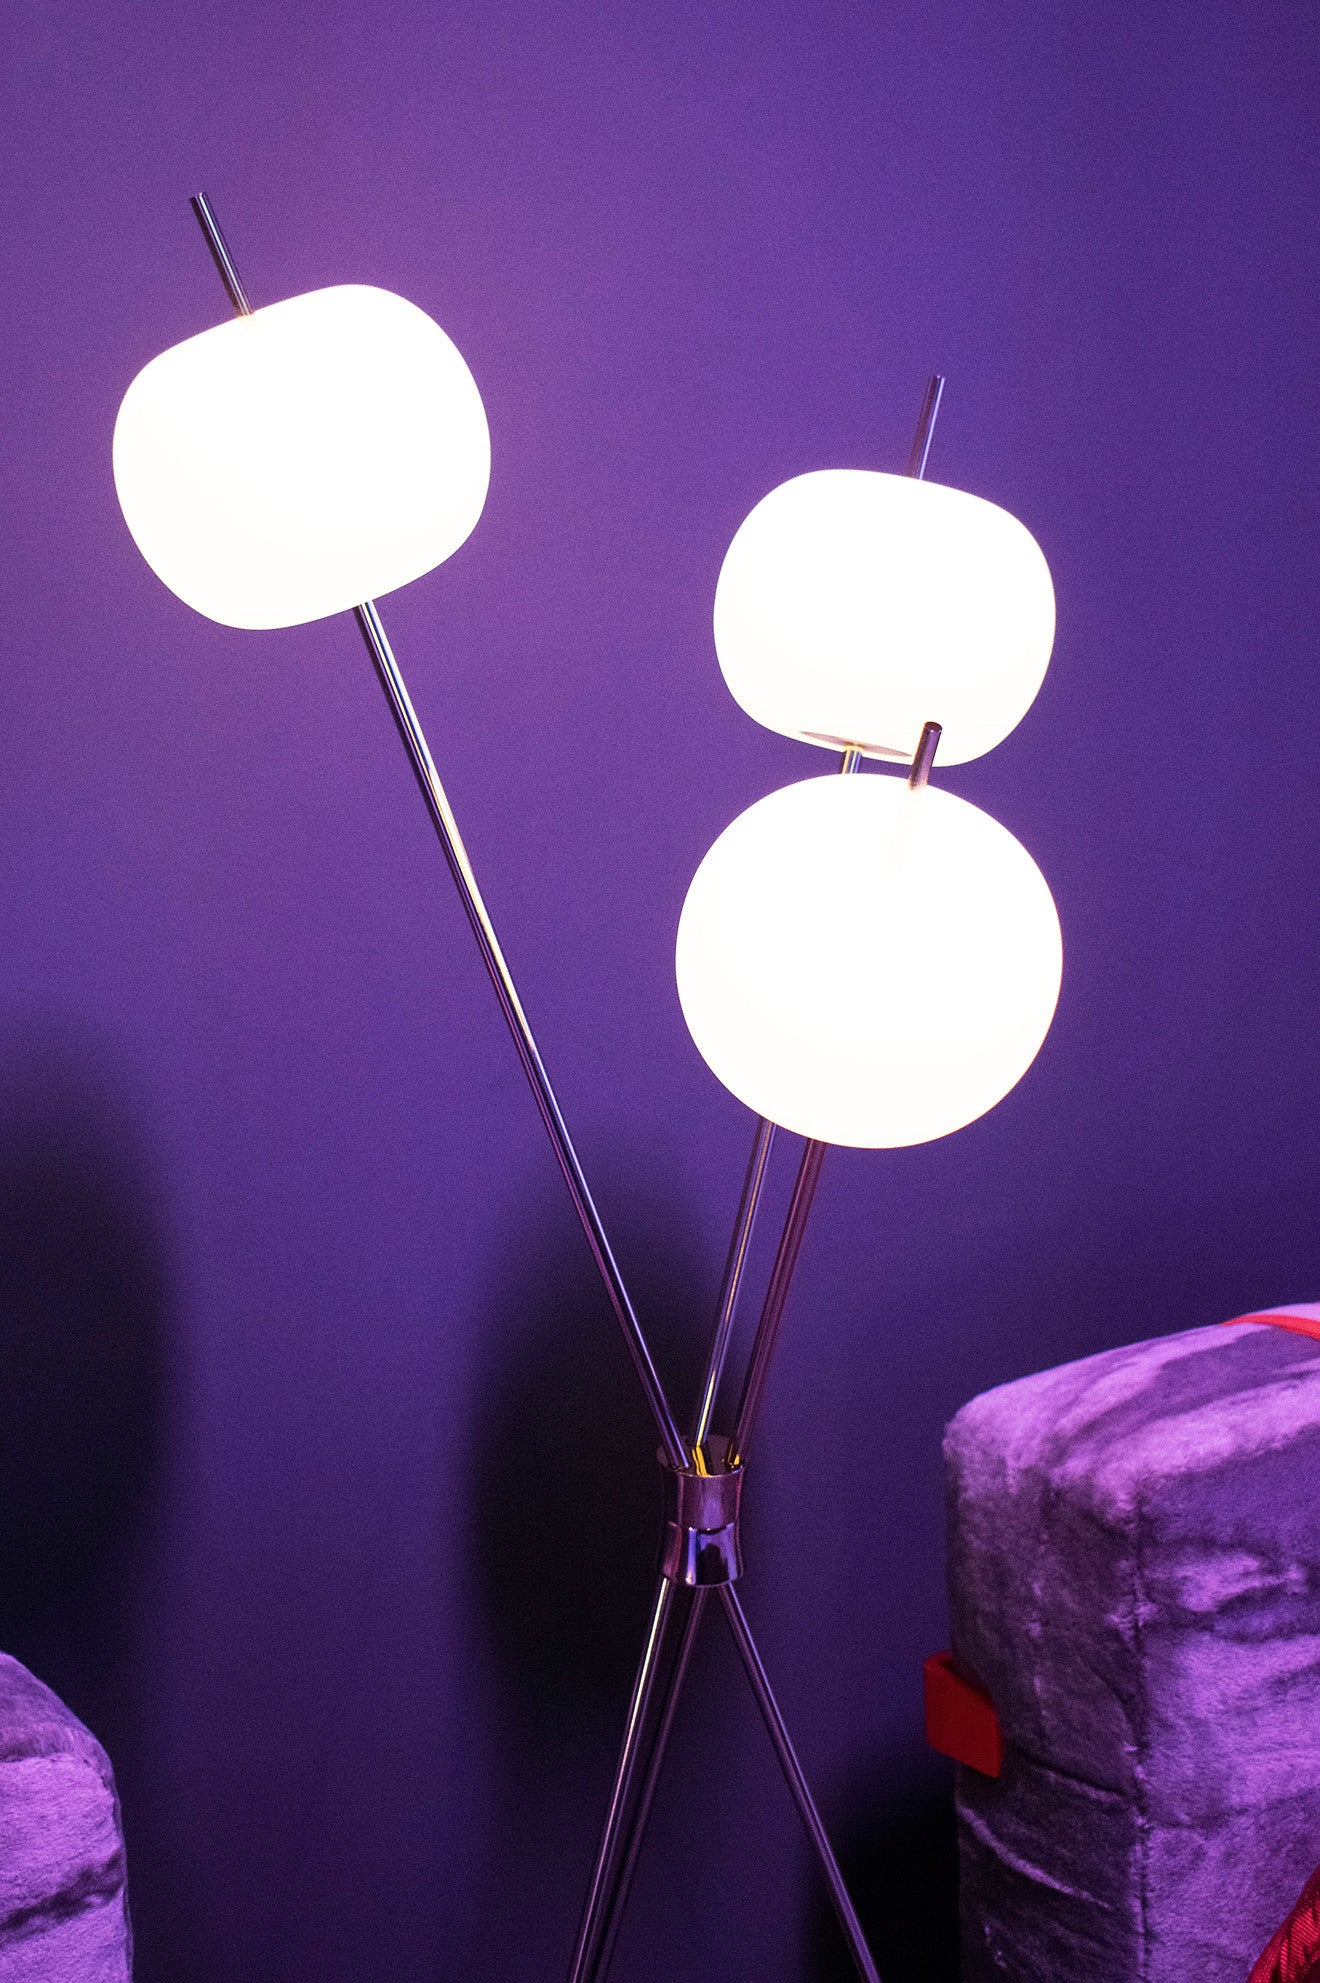 Contemporary floor light with globes on sticks